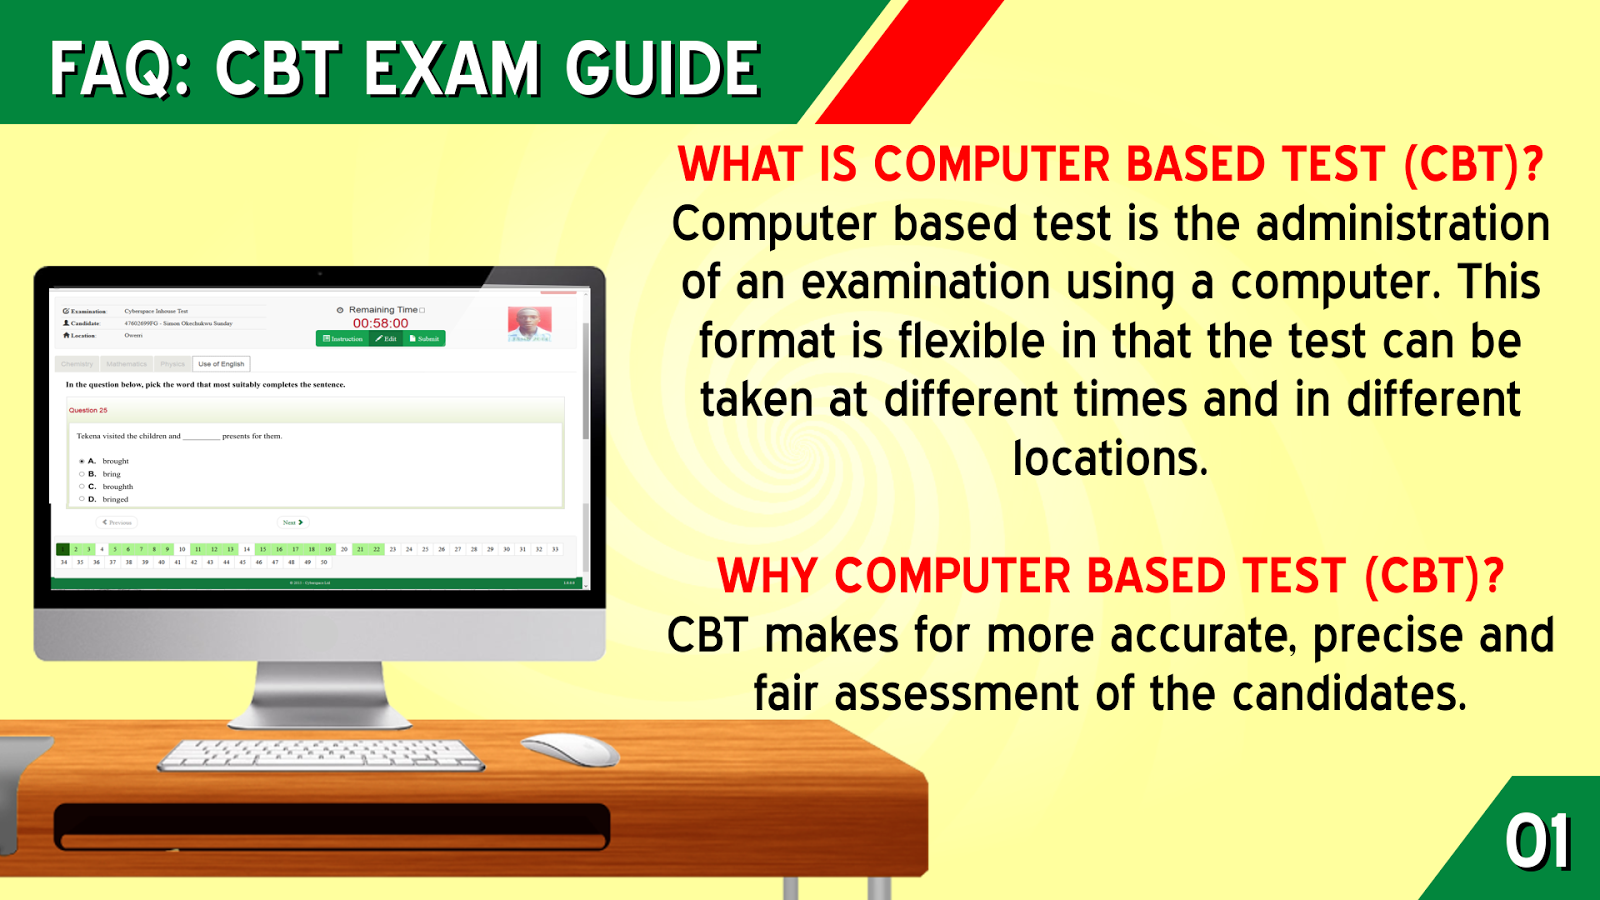 Jamb CBT Frequently Asked Questions - JAMB FAQs